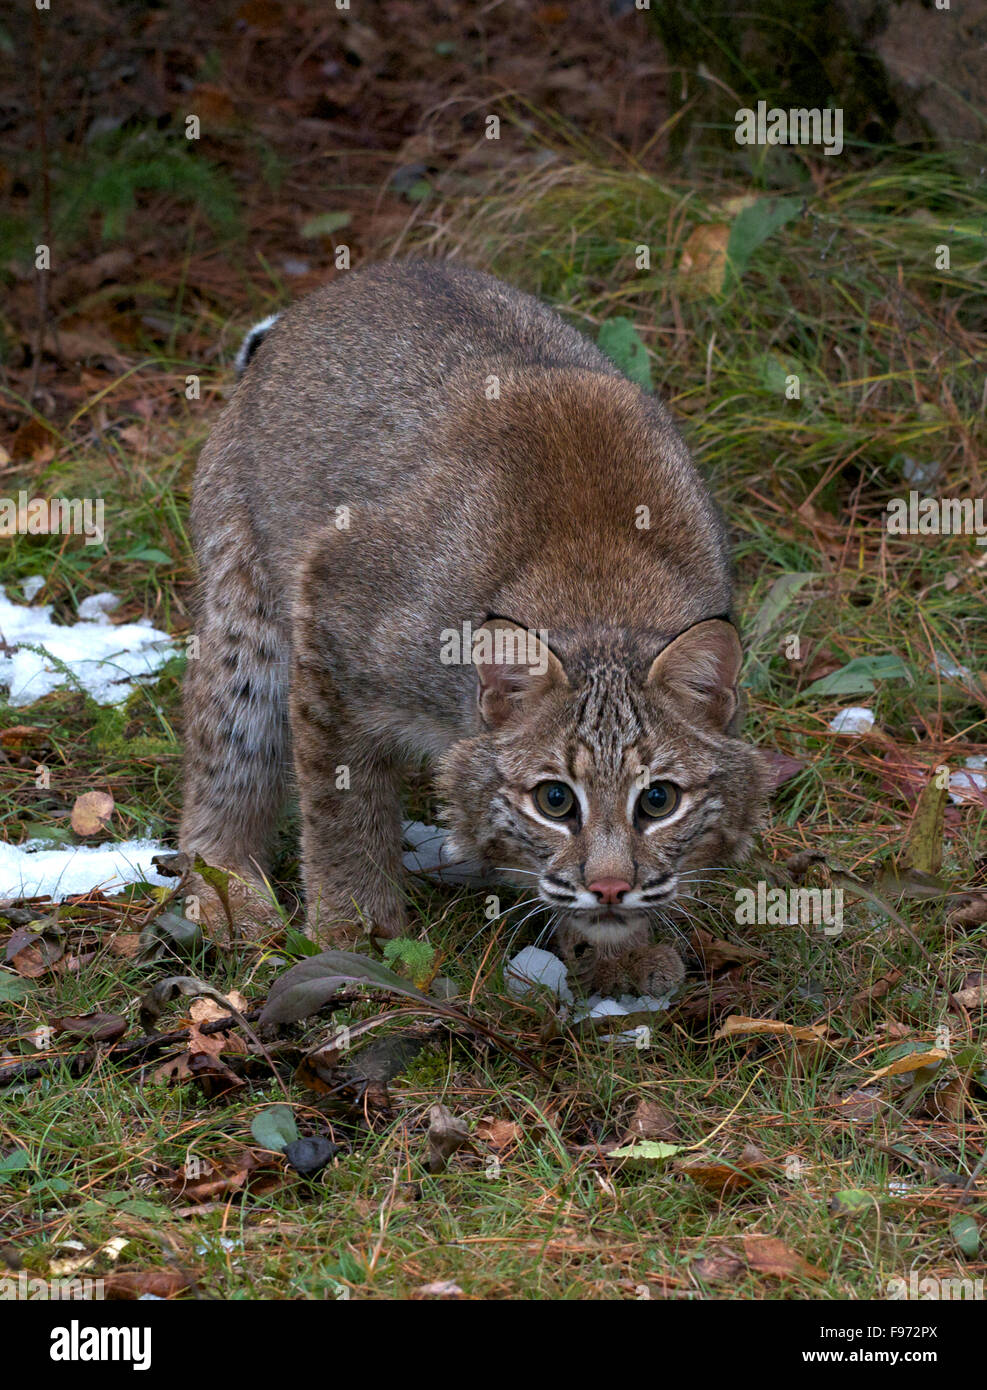 Bobcat (Lynx rufus), Superior National Forest, MN, USA - Stock Image